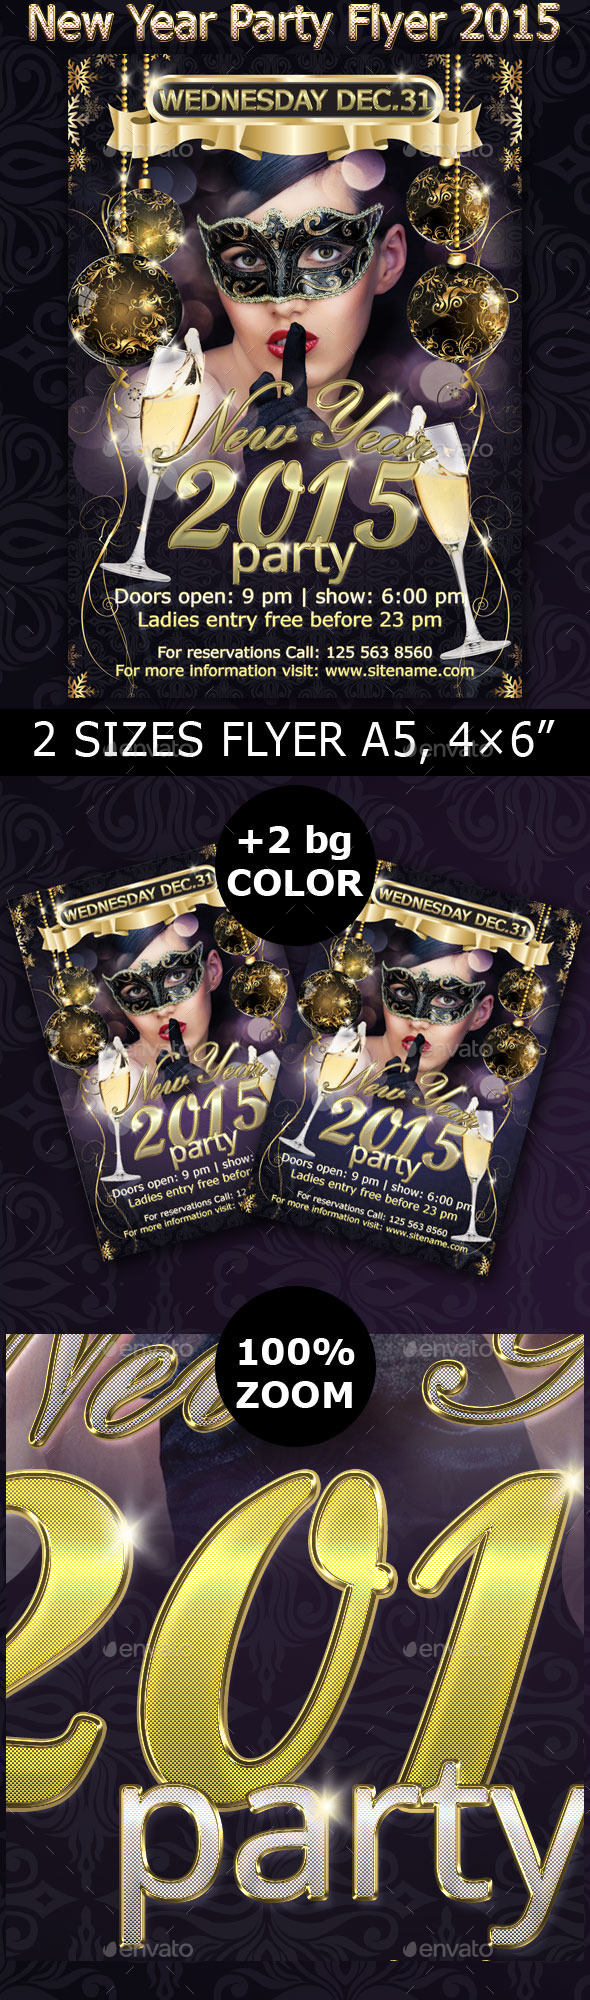 New Year Party Flyer 2015 - Clubs & Parties Events